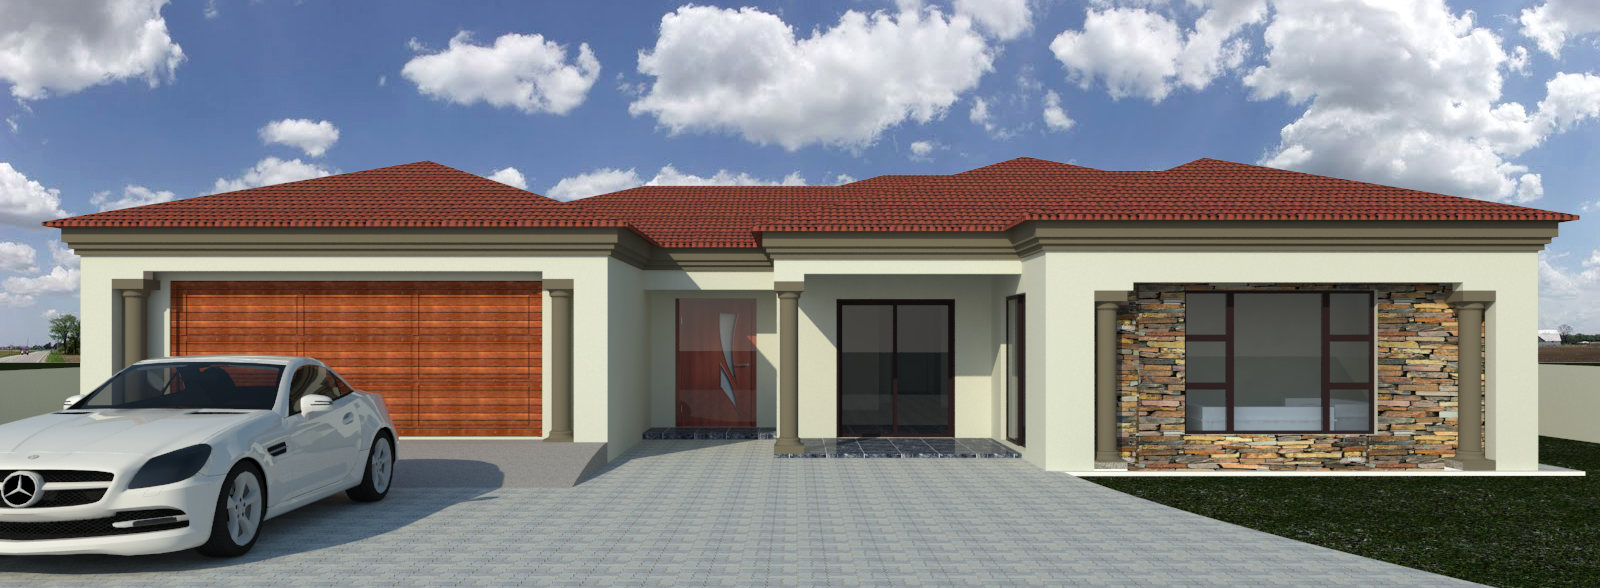 Single storey home with roof top rooms design.